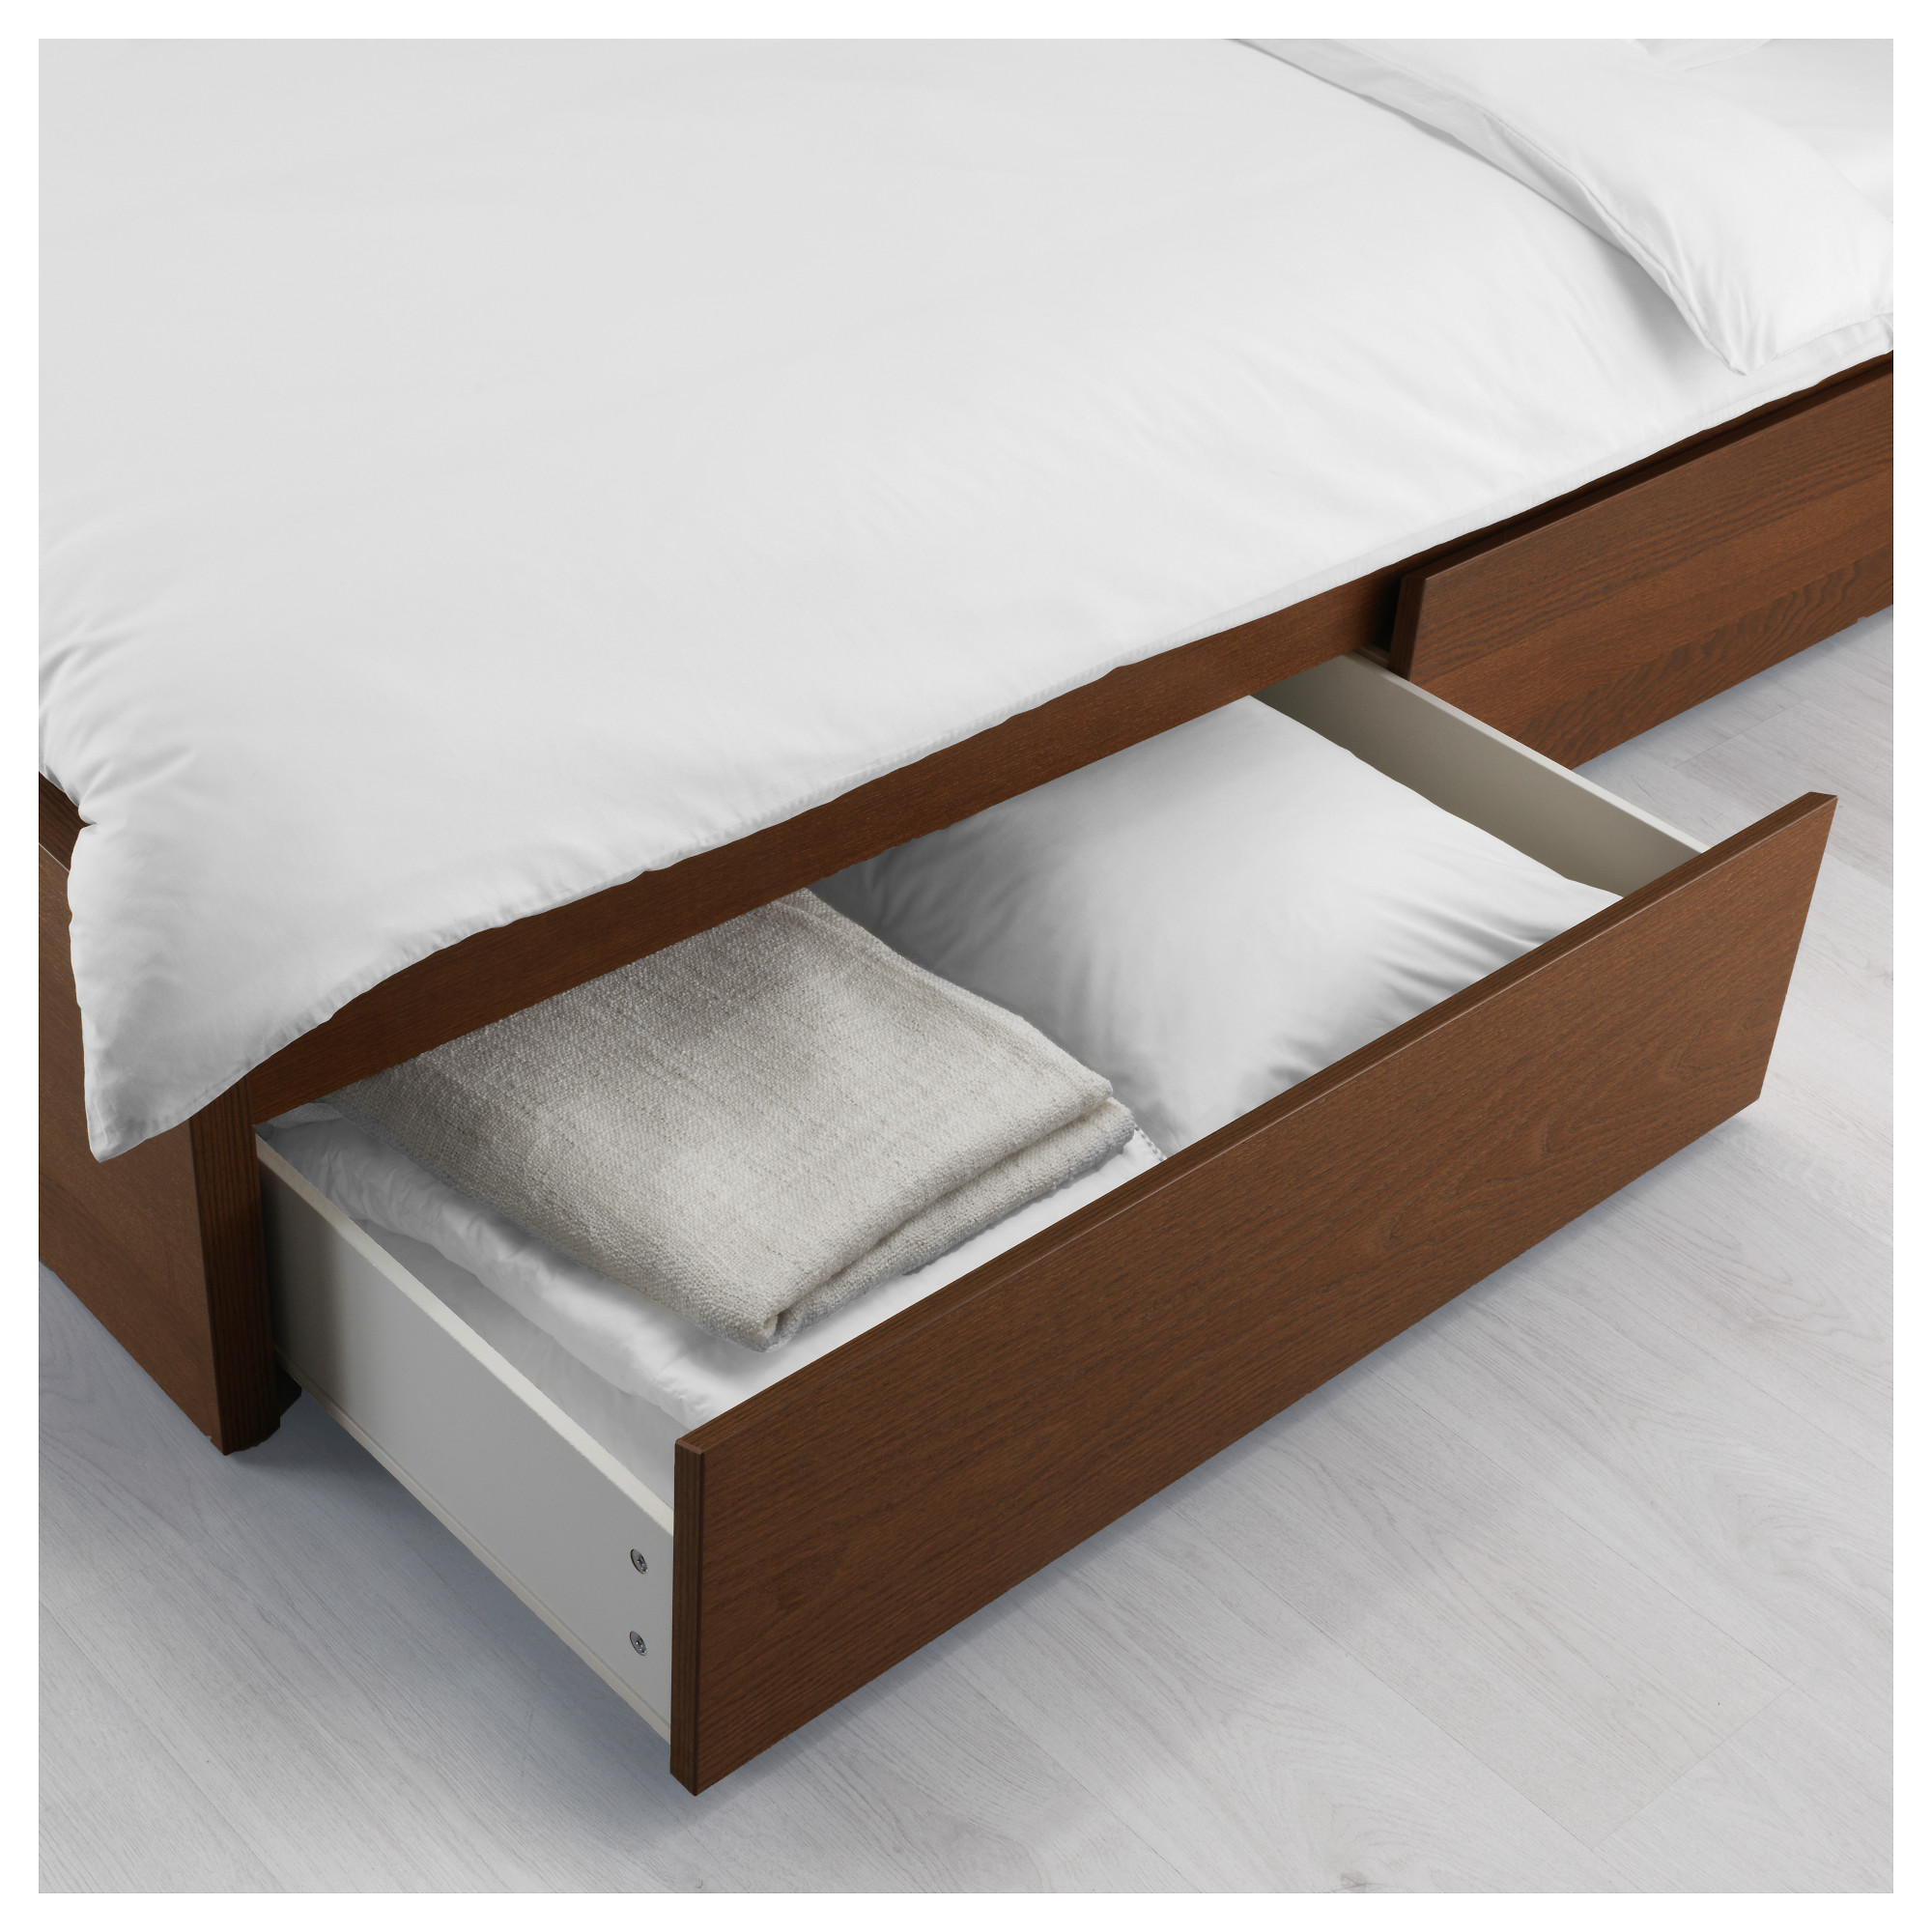 Bed frame with storage - Bed Frame With Storage 50